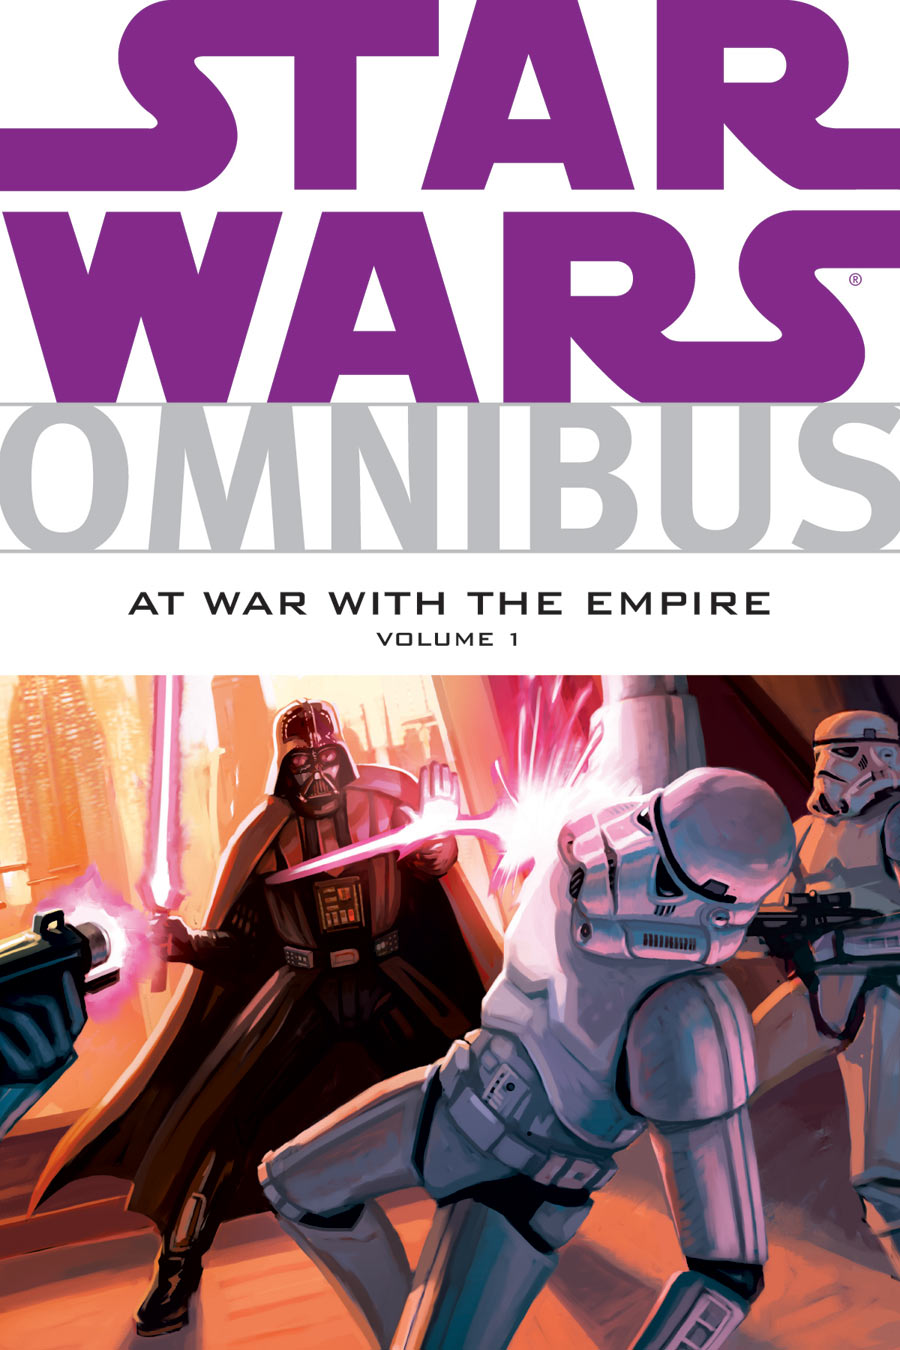 Star Wars Omnibus: At War with the Empire Volume 1 (09.03.2011)